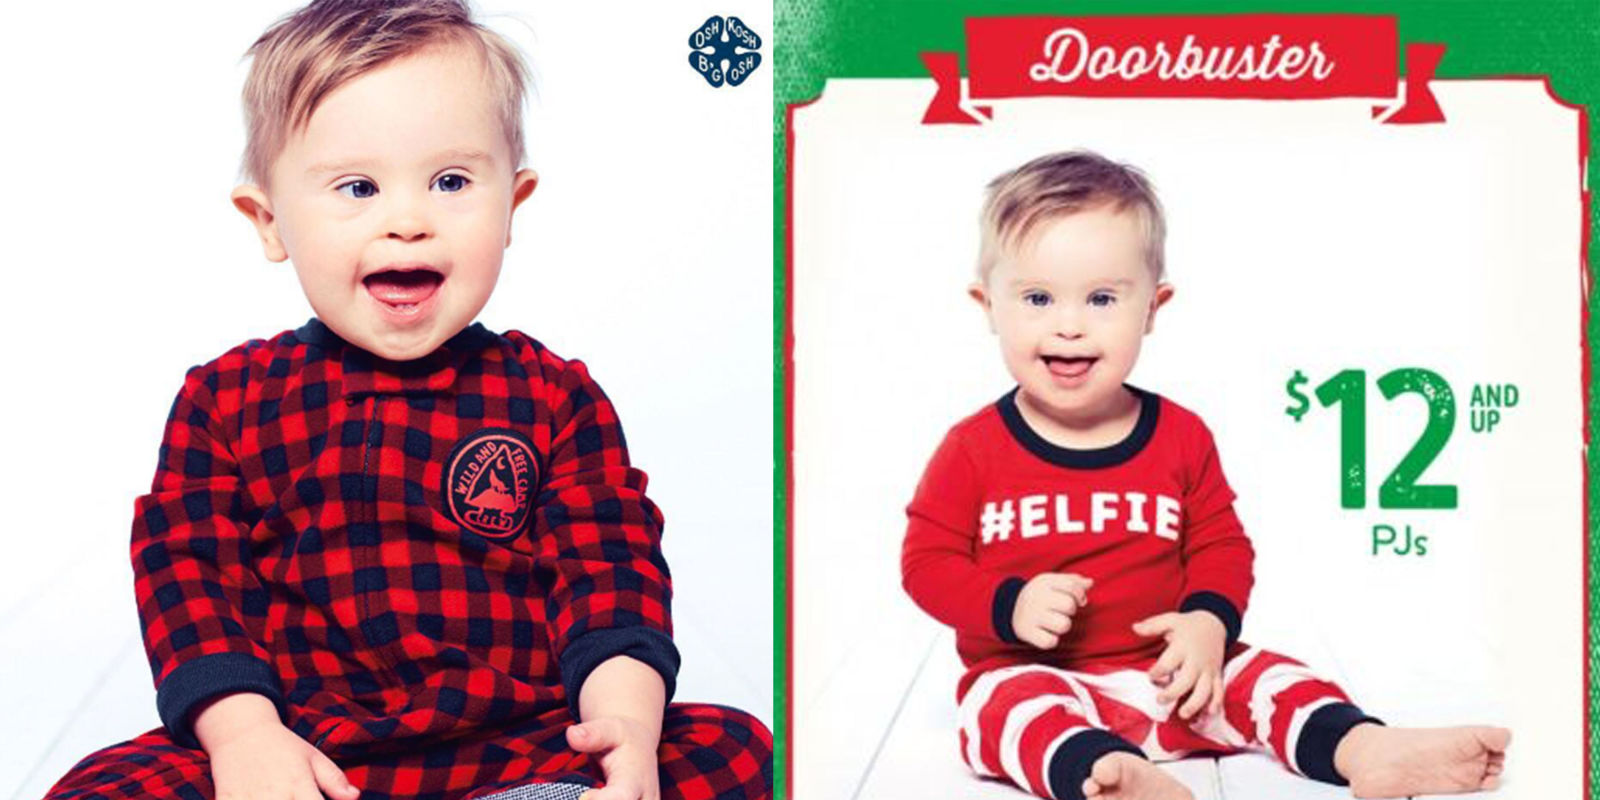 Baby Model With Down Syndrome Stars In Oshkosh Holiday Ad Asher Nash Scores First Modeling Gig